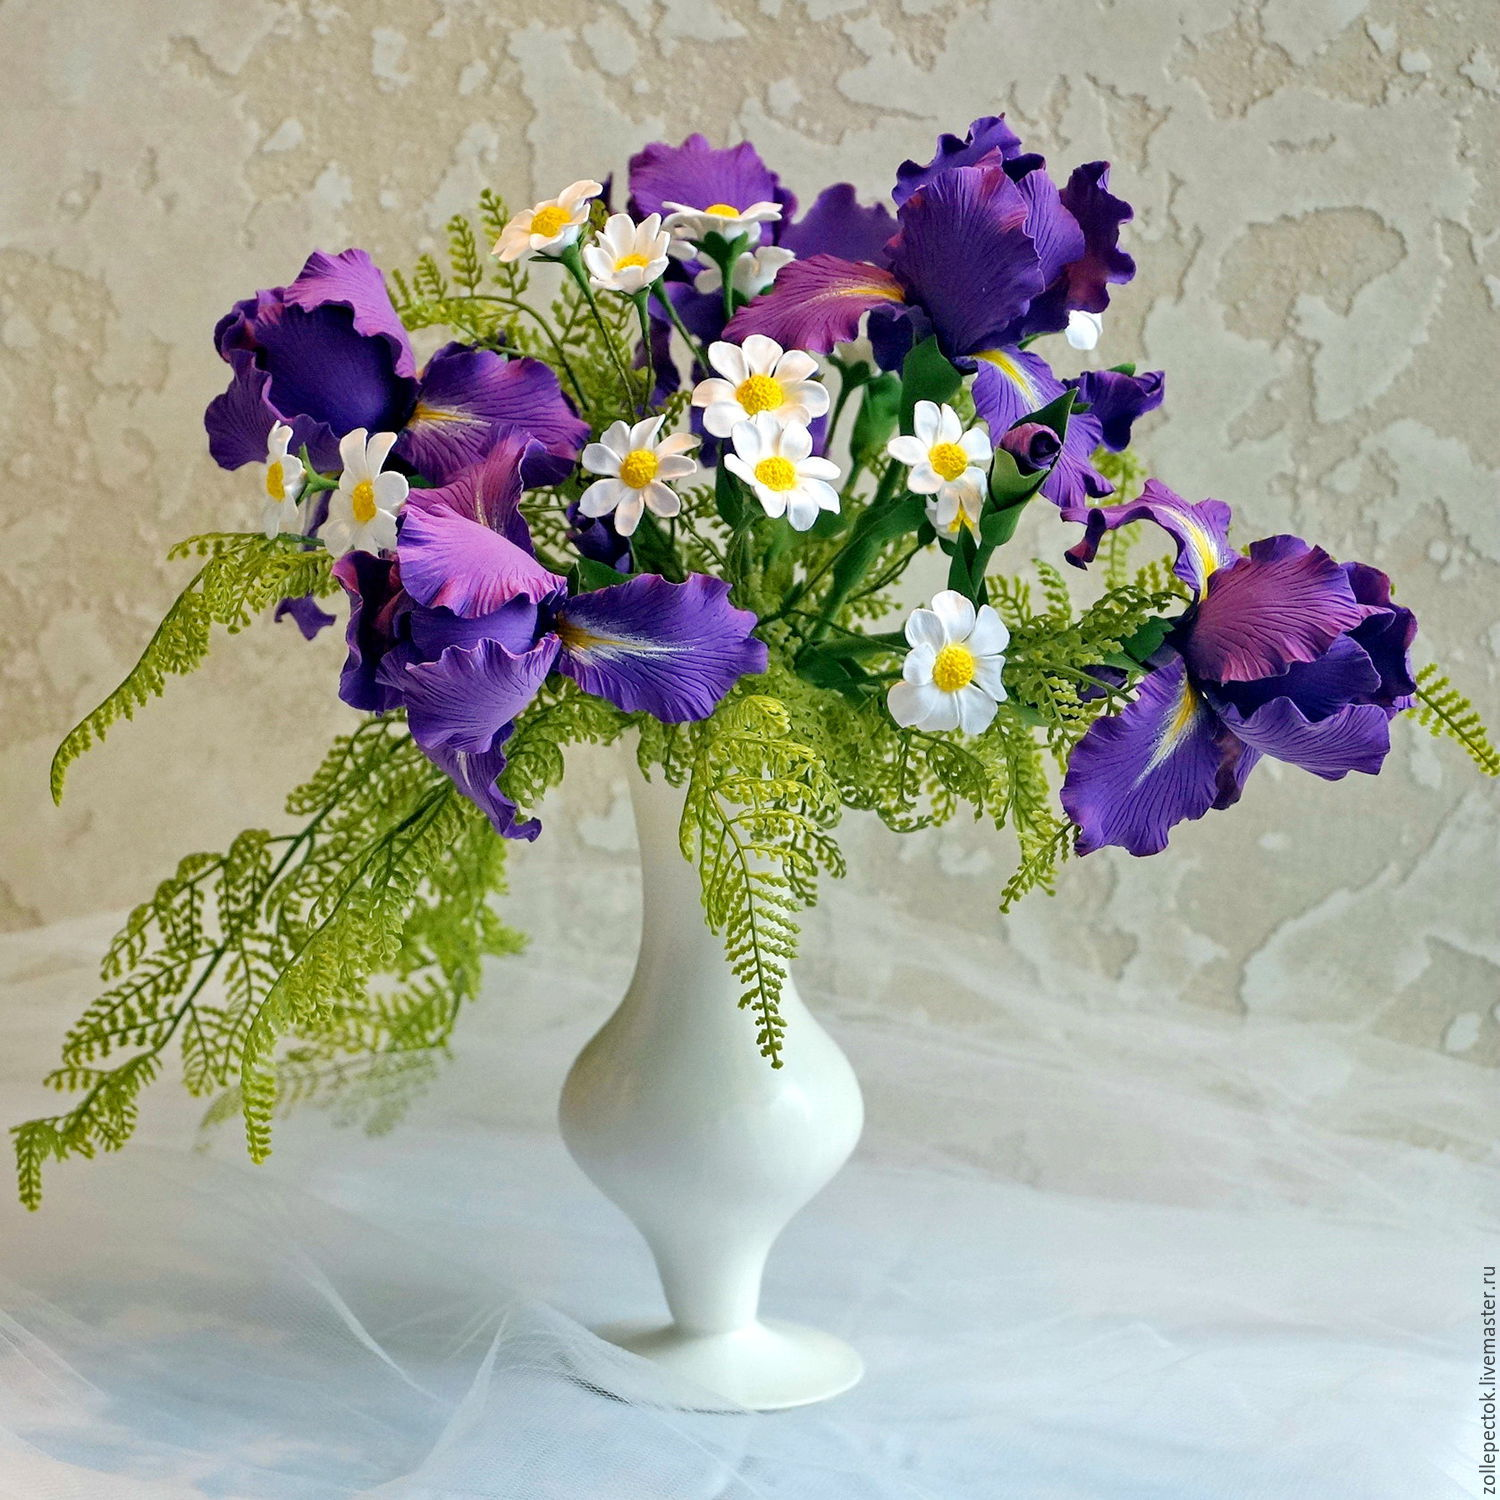 Buy Bouquet Quot Irises And Daisies Quot On Livemaster Online Shop